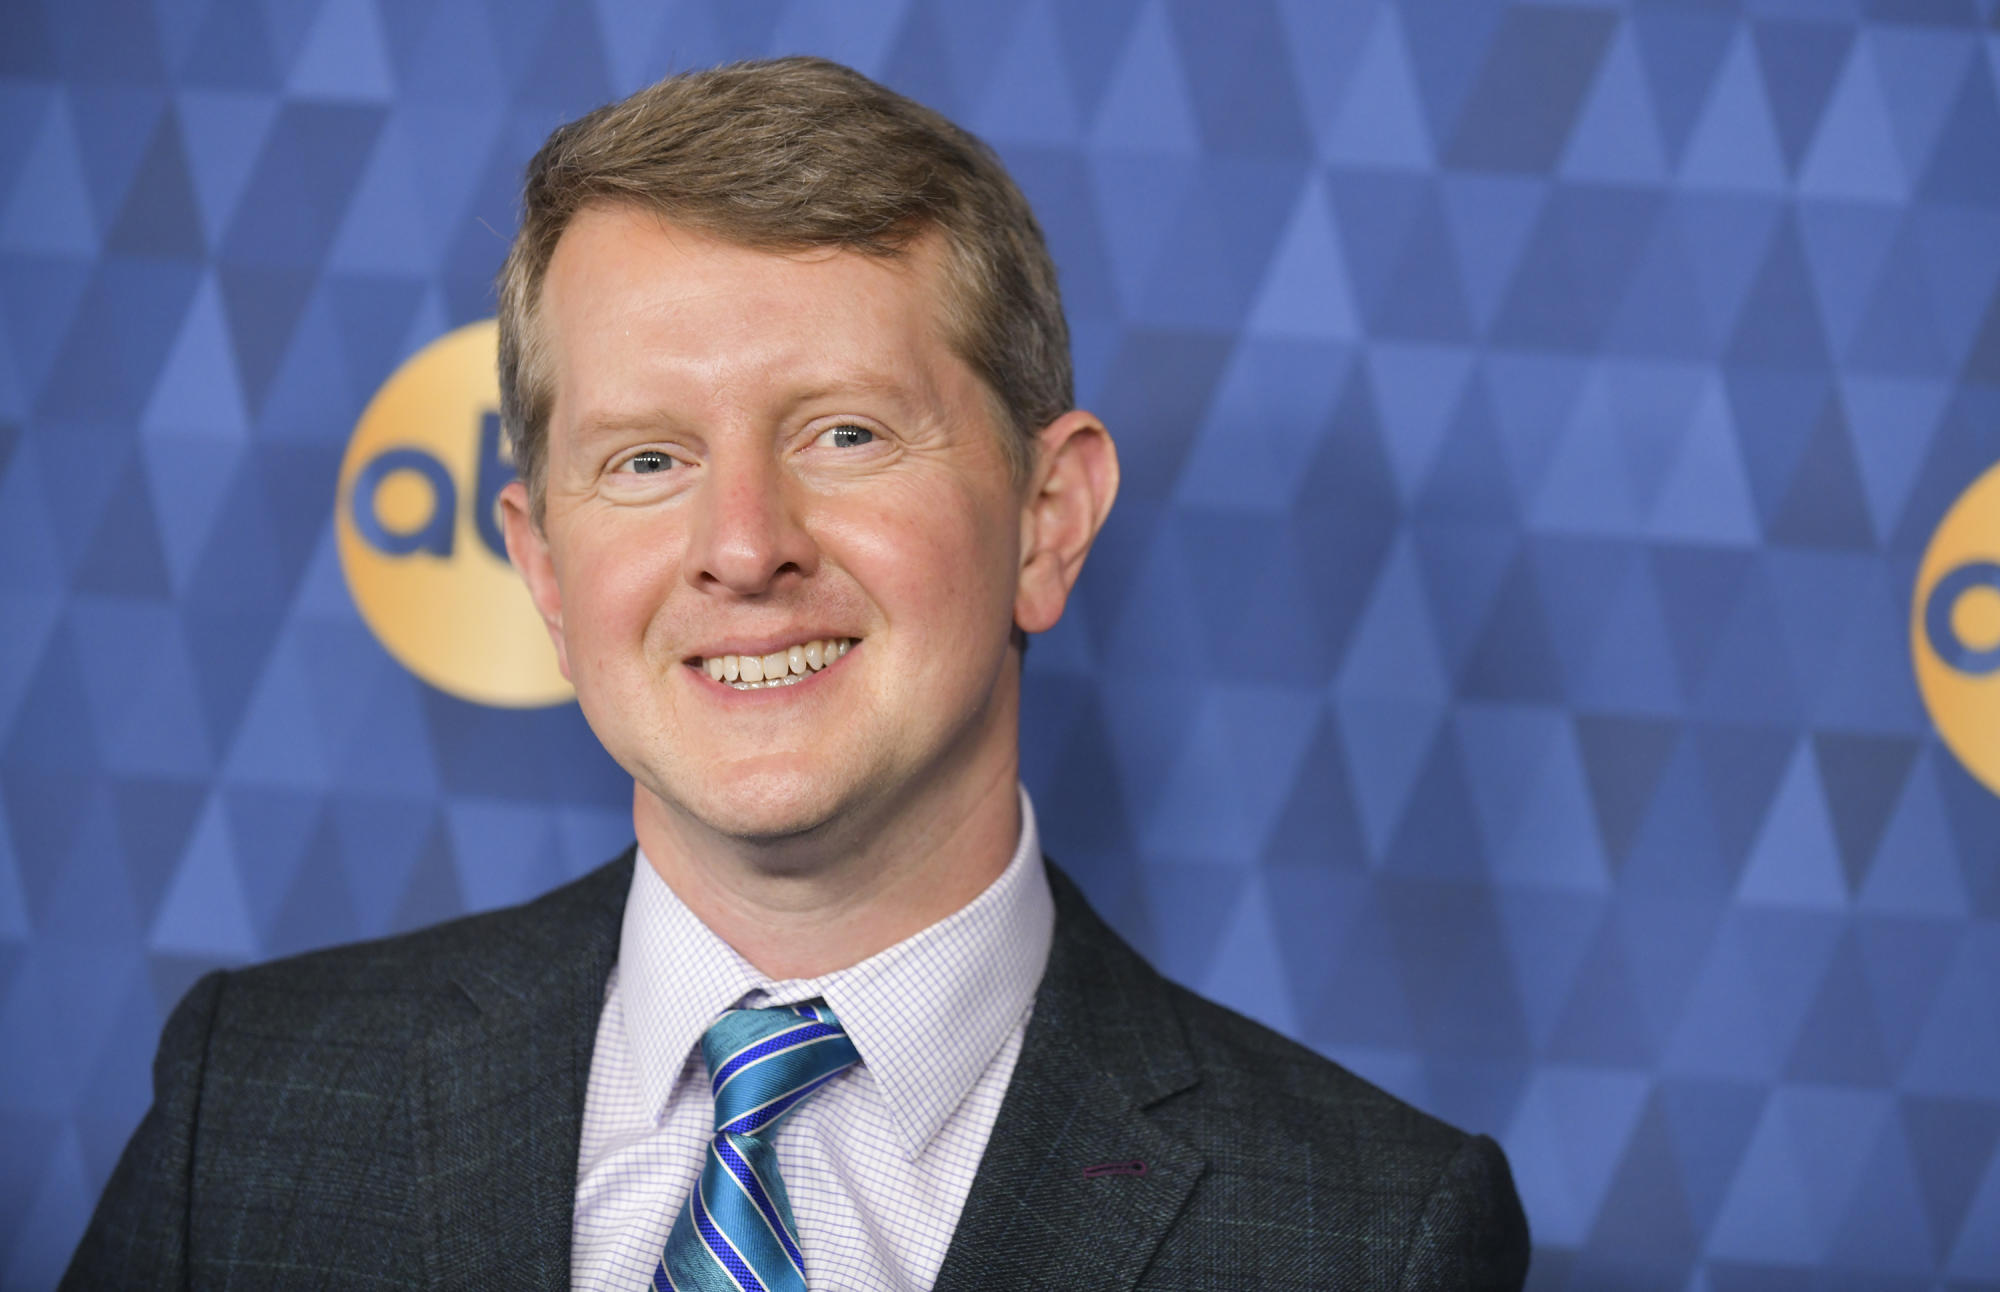 Ken Jennings called out for past insensitive tweets after being named interim 'Jeopardy!' host